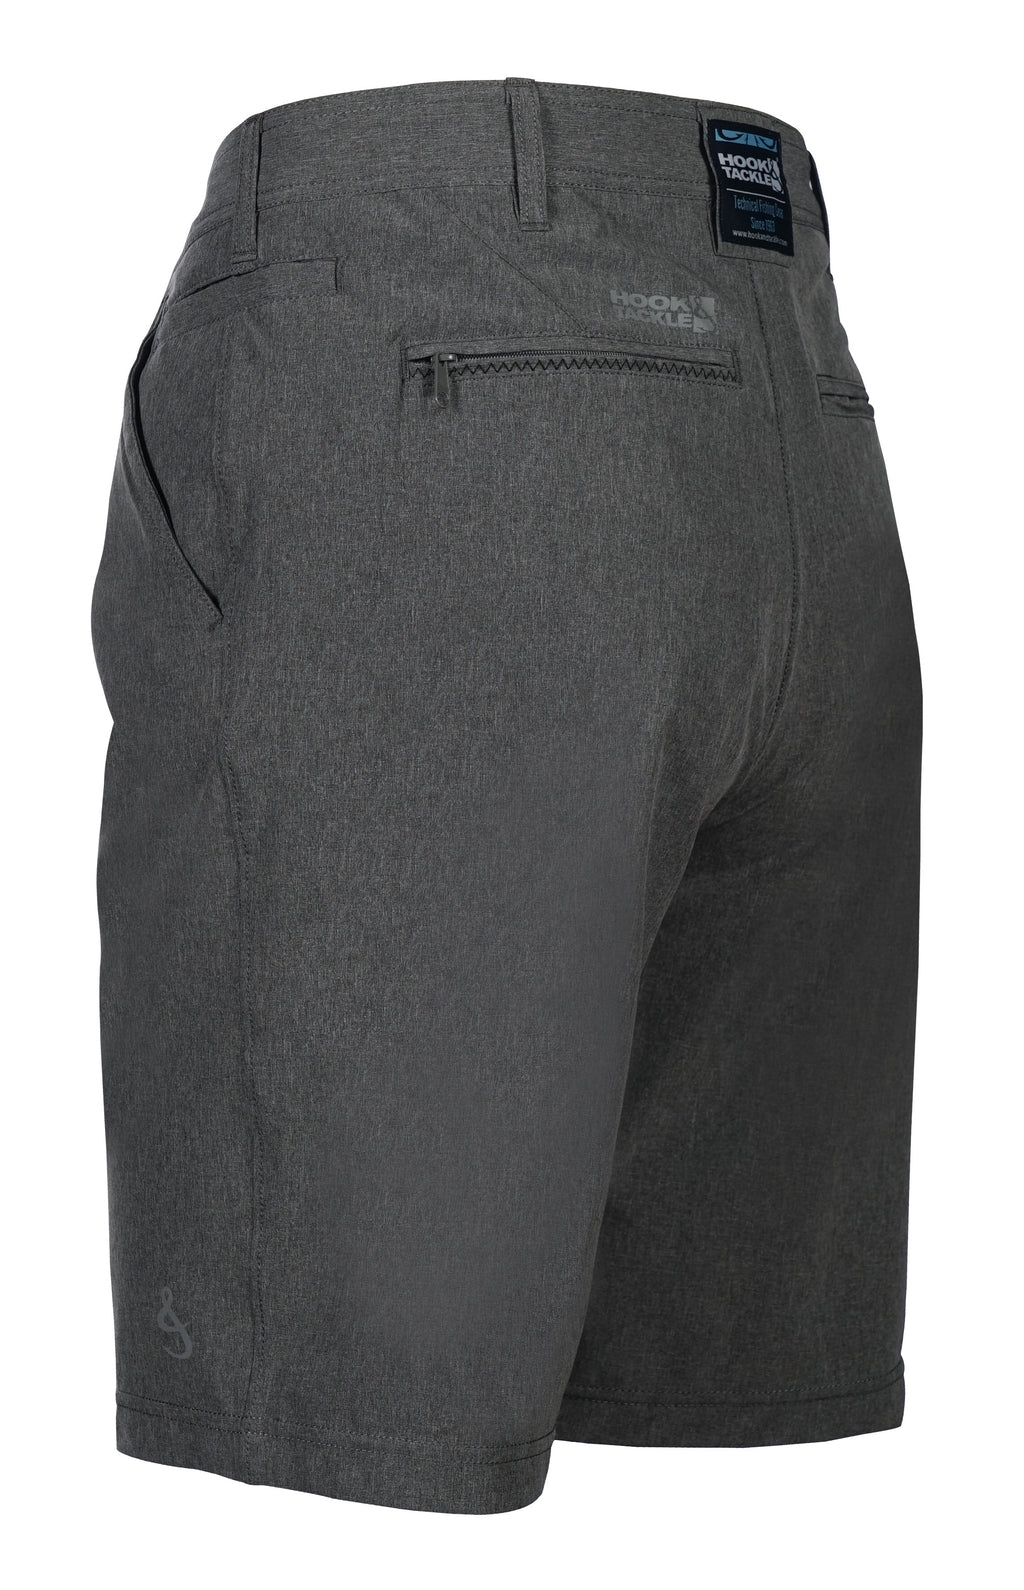 Hi-Tide Hybrid 4-Way Stretch Short, Porpoise Grey